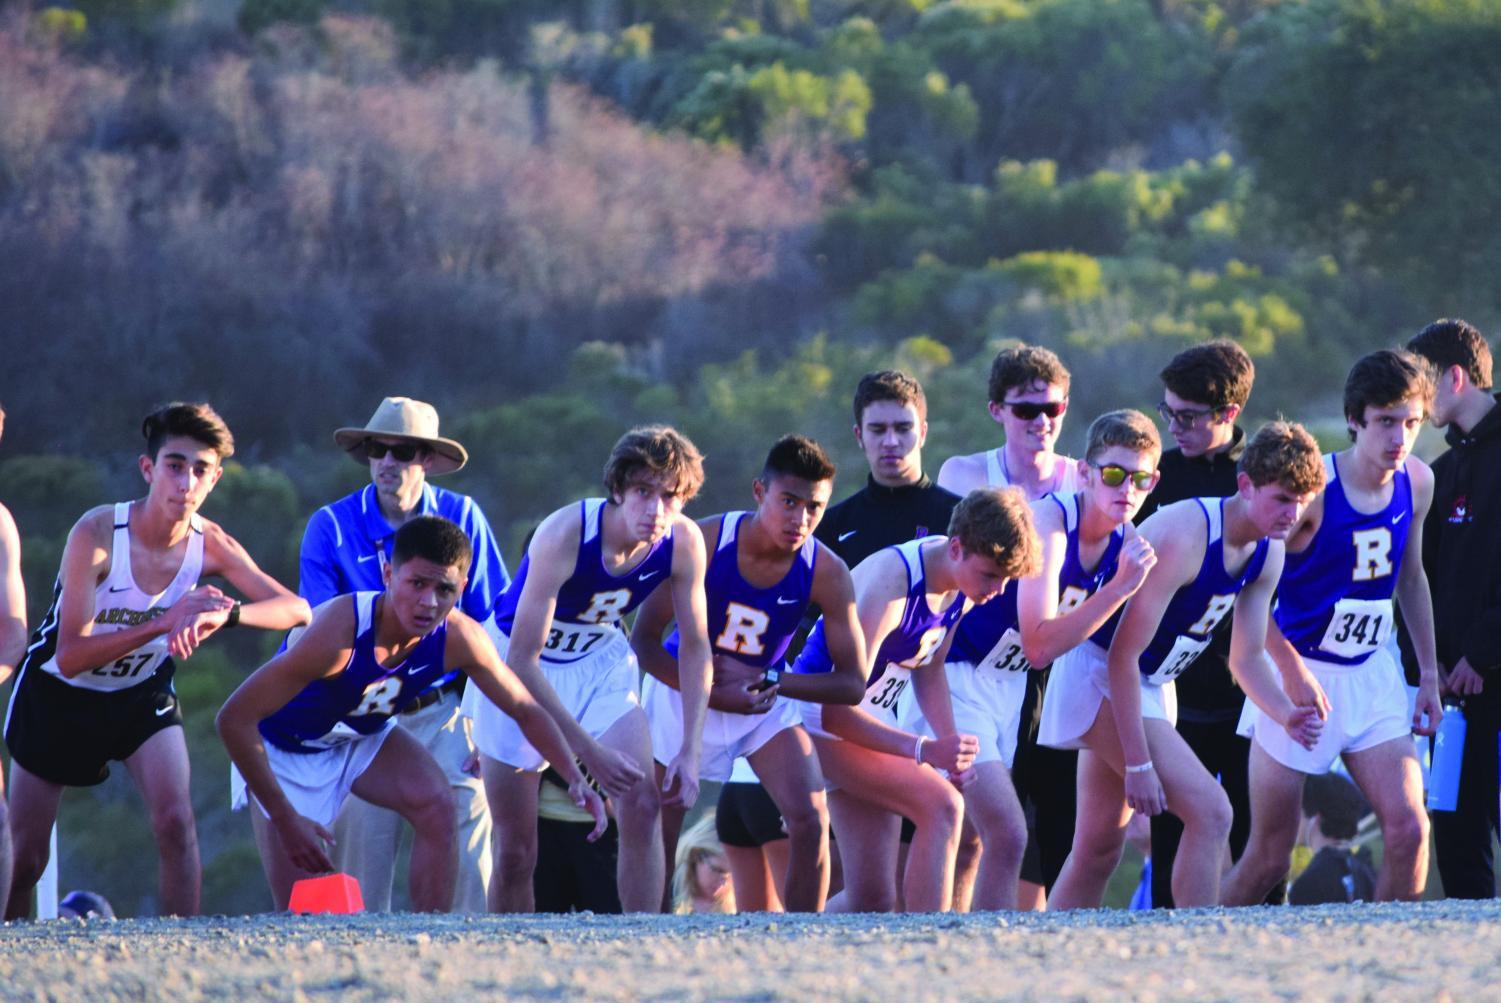 Cross Country runners prepare for the WCAL Championships at Crystal Springs.